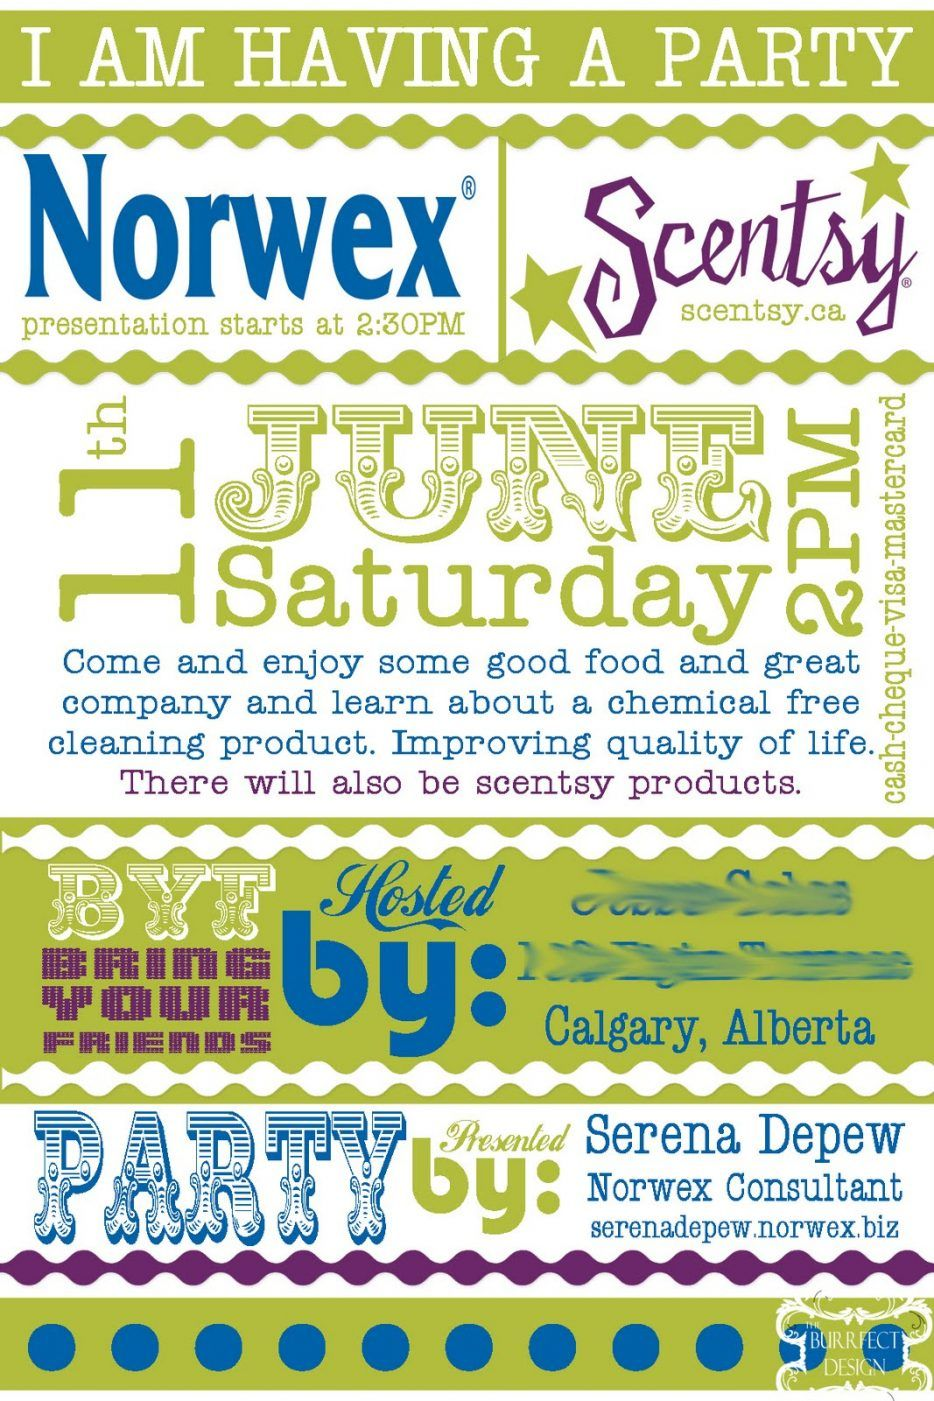 party-invitations-handmade-green-and-white-background-style-norwex ...